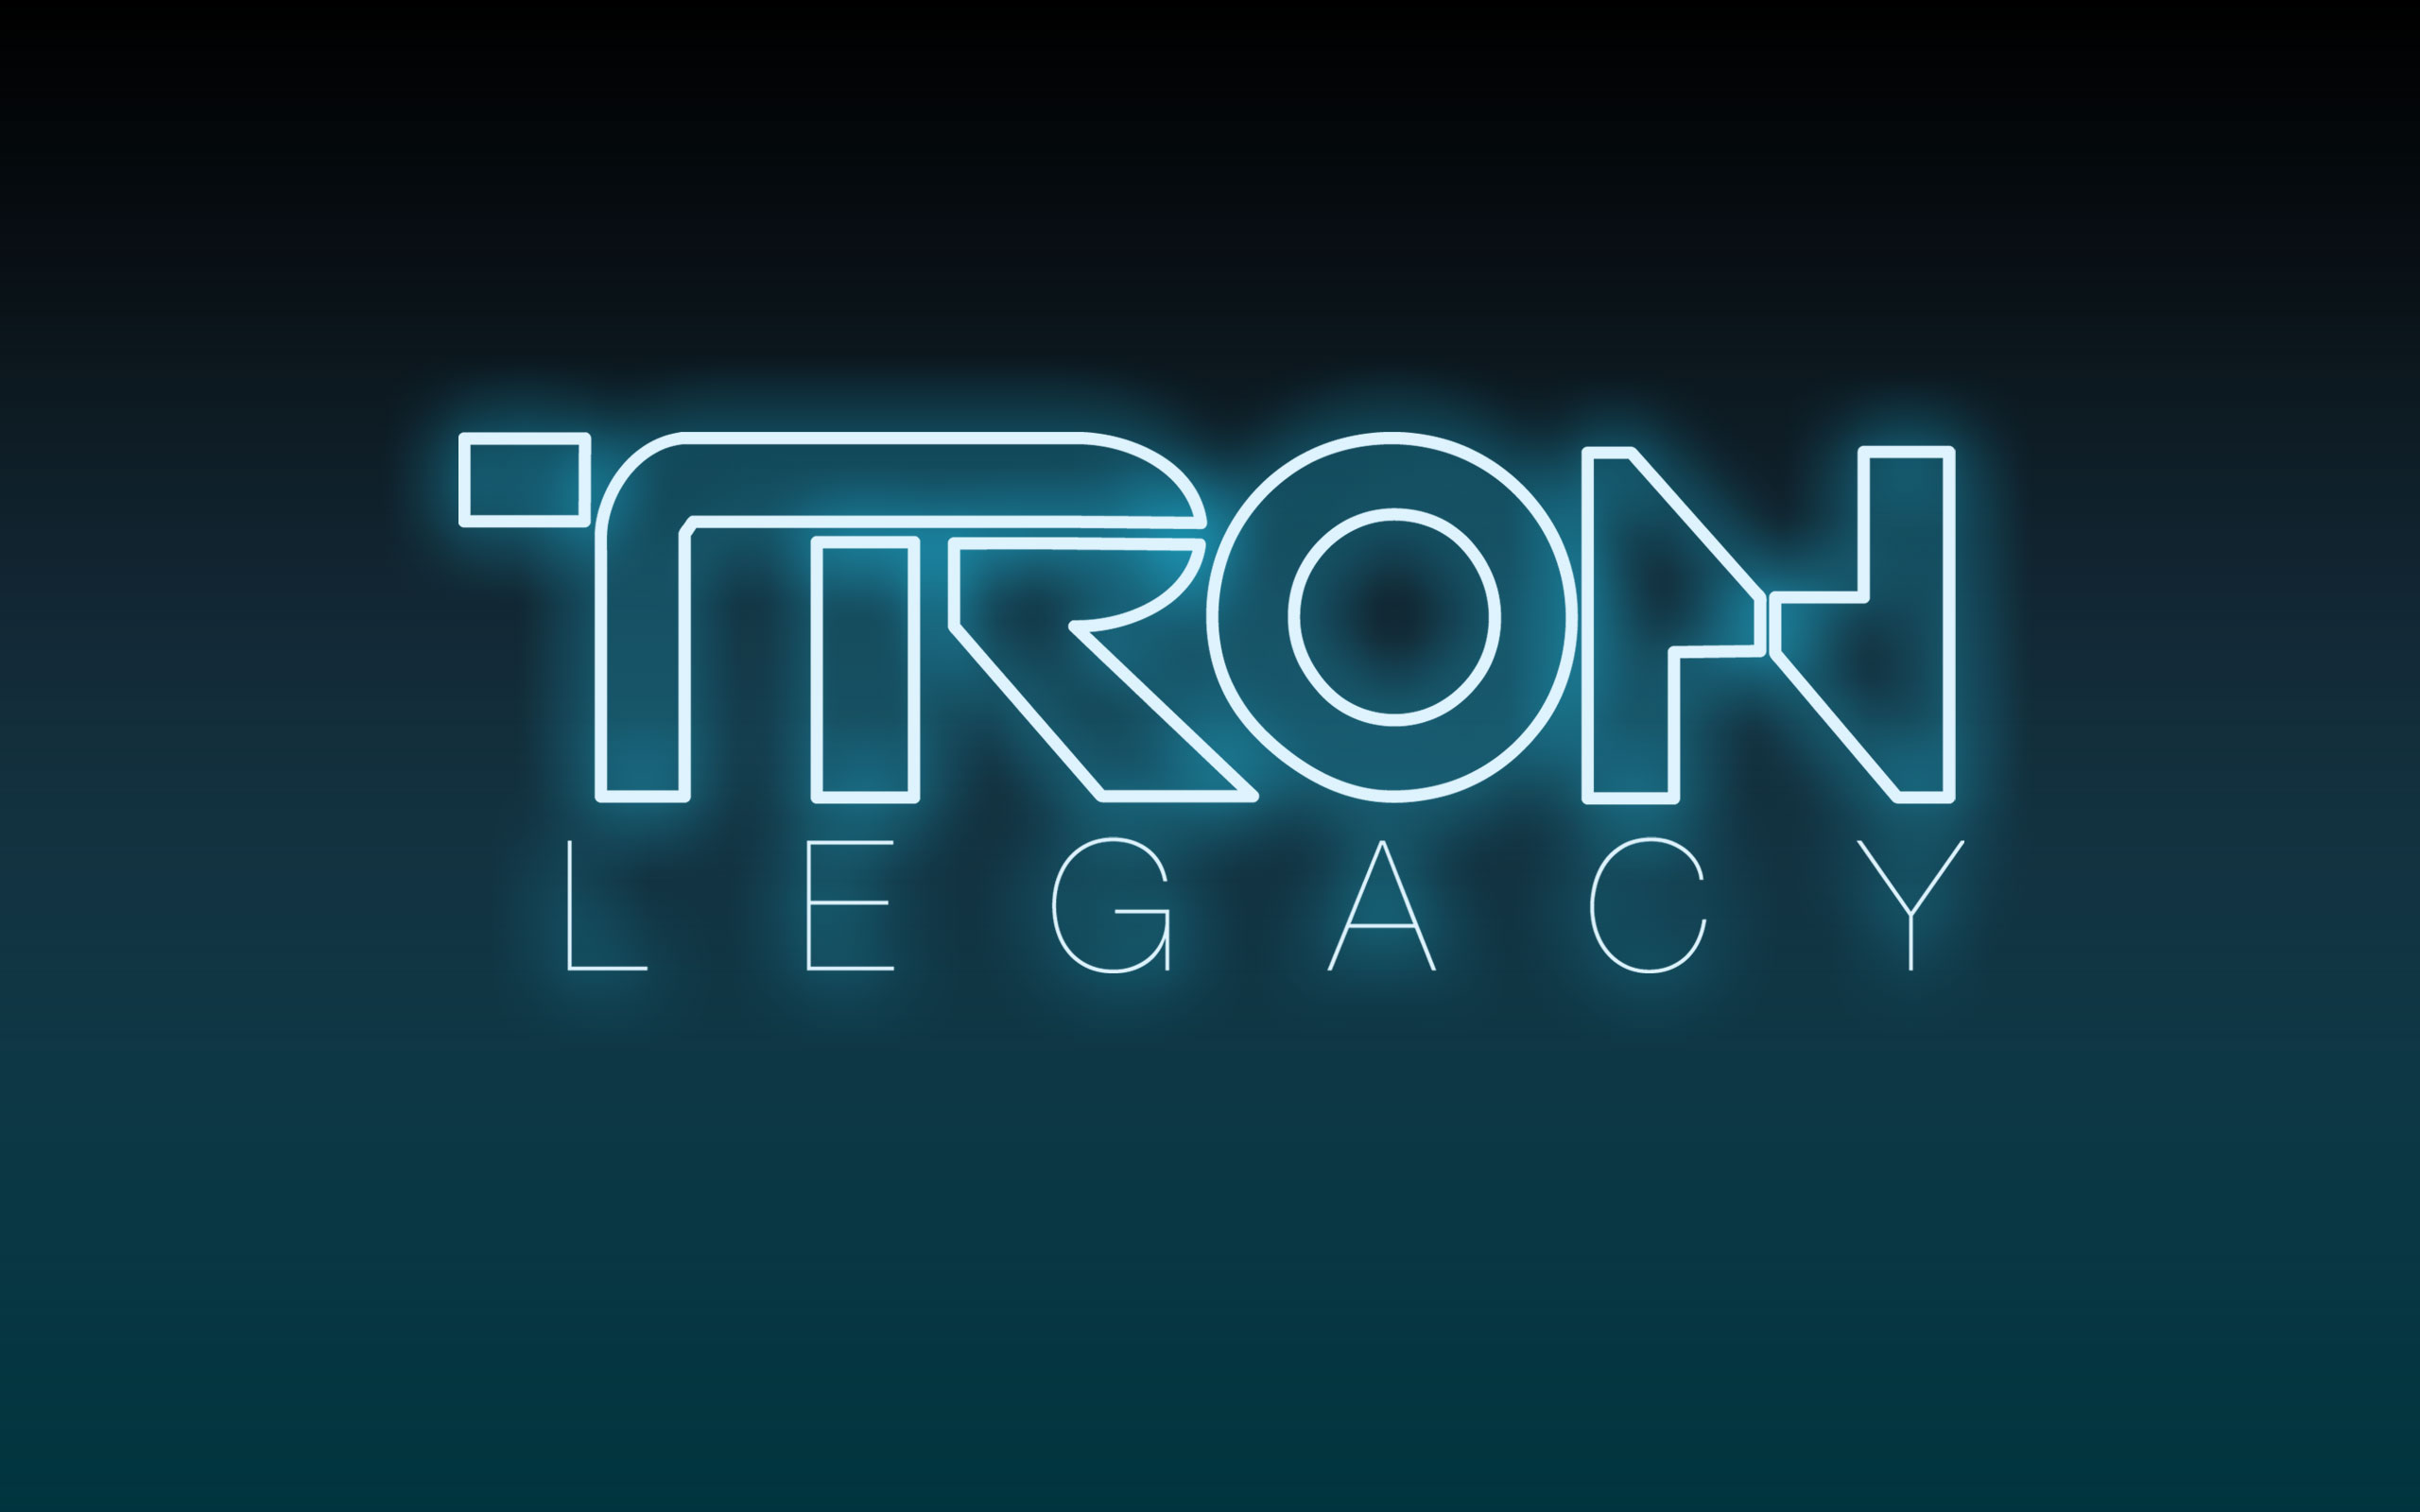 Disney S Tron Legacy Movie Logo Desktop Wallpaper